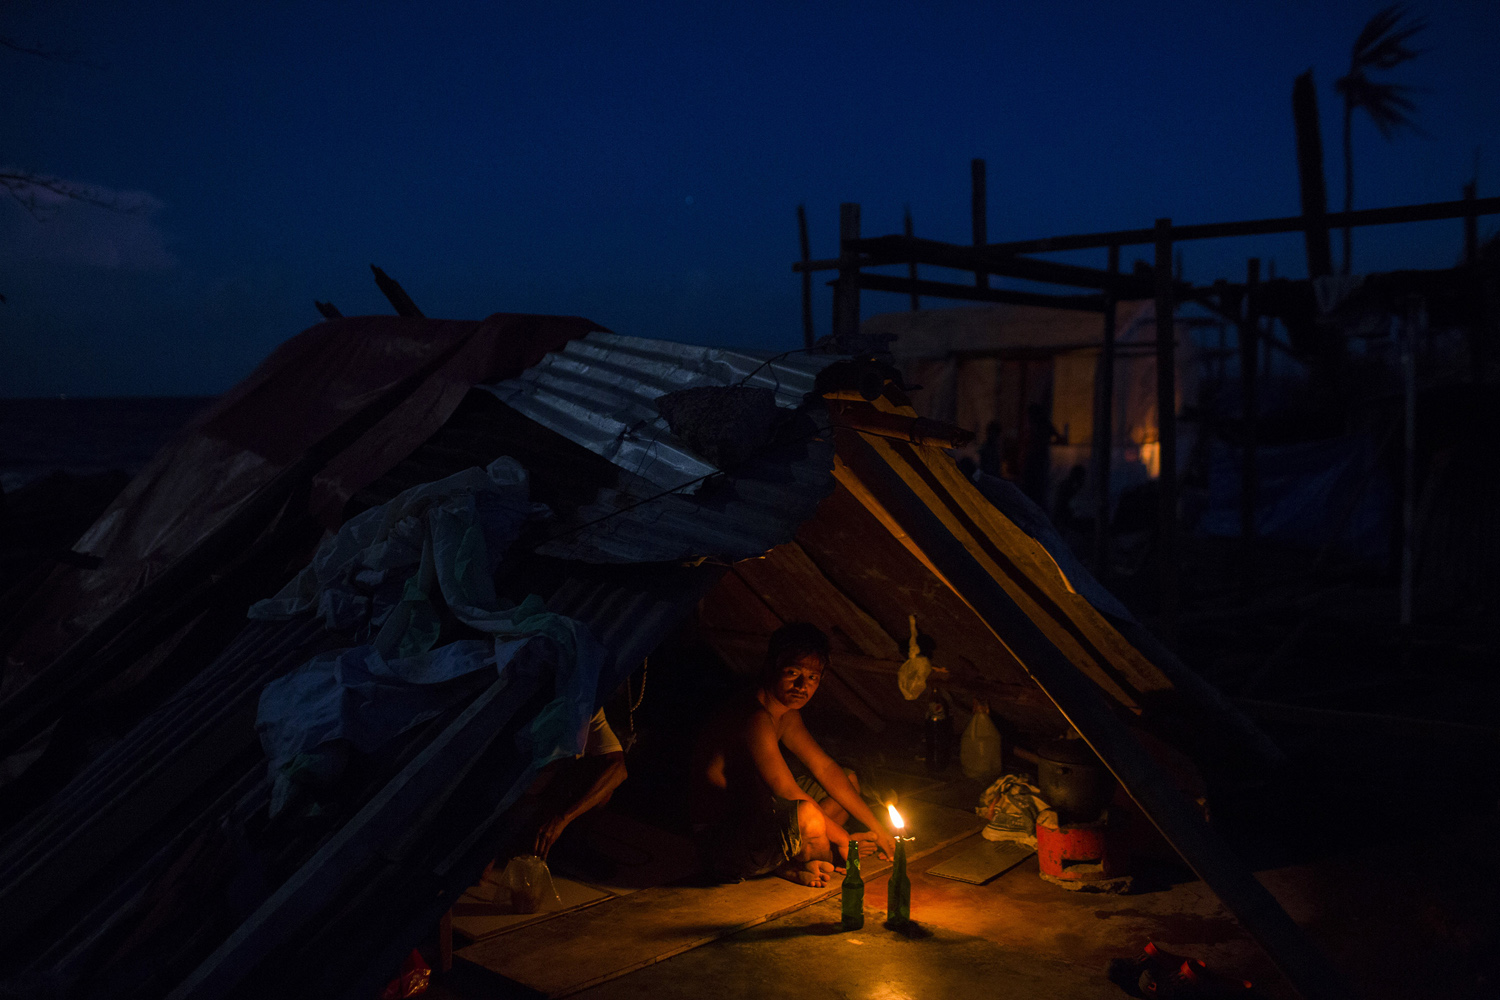 A man whose home was destroyed by Haiyan sits in the rubble of his home in Tanuan, Nov. 15, 2013.